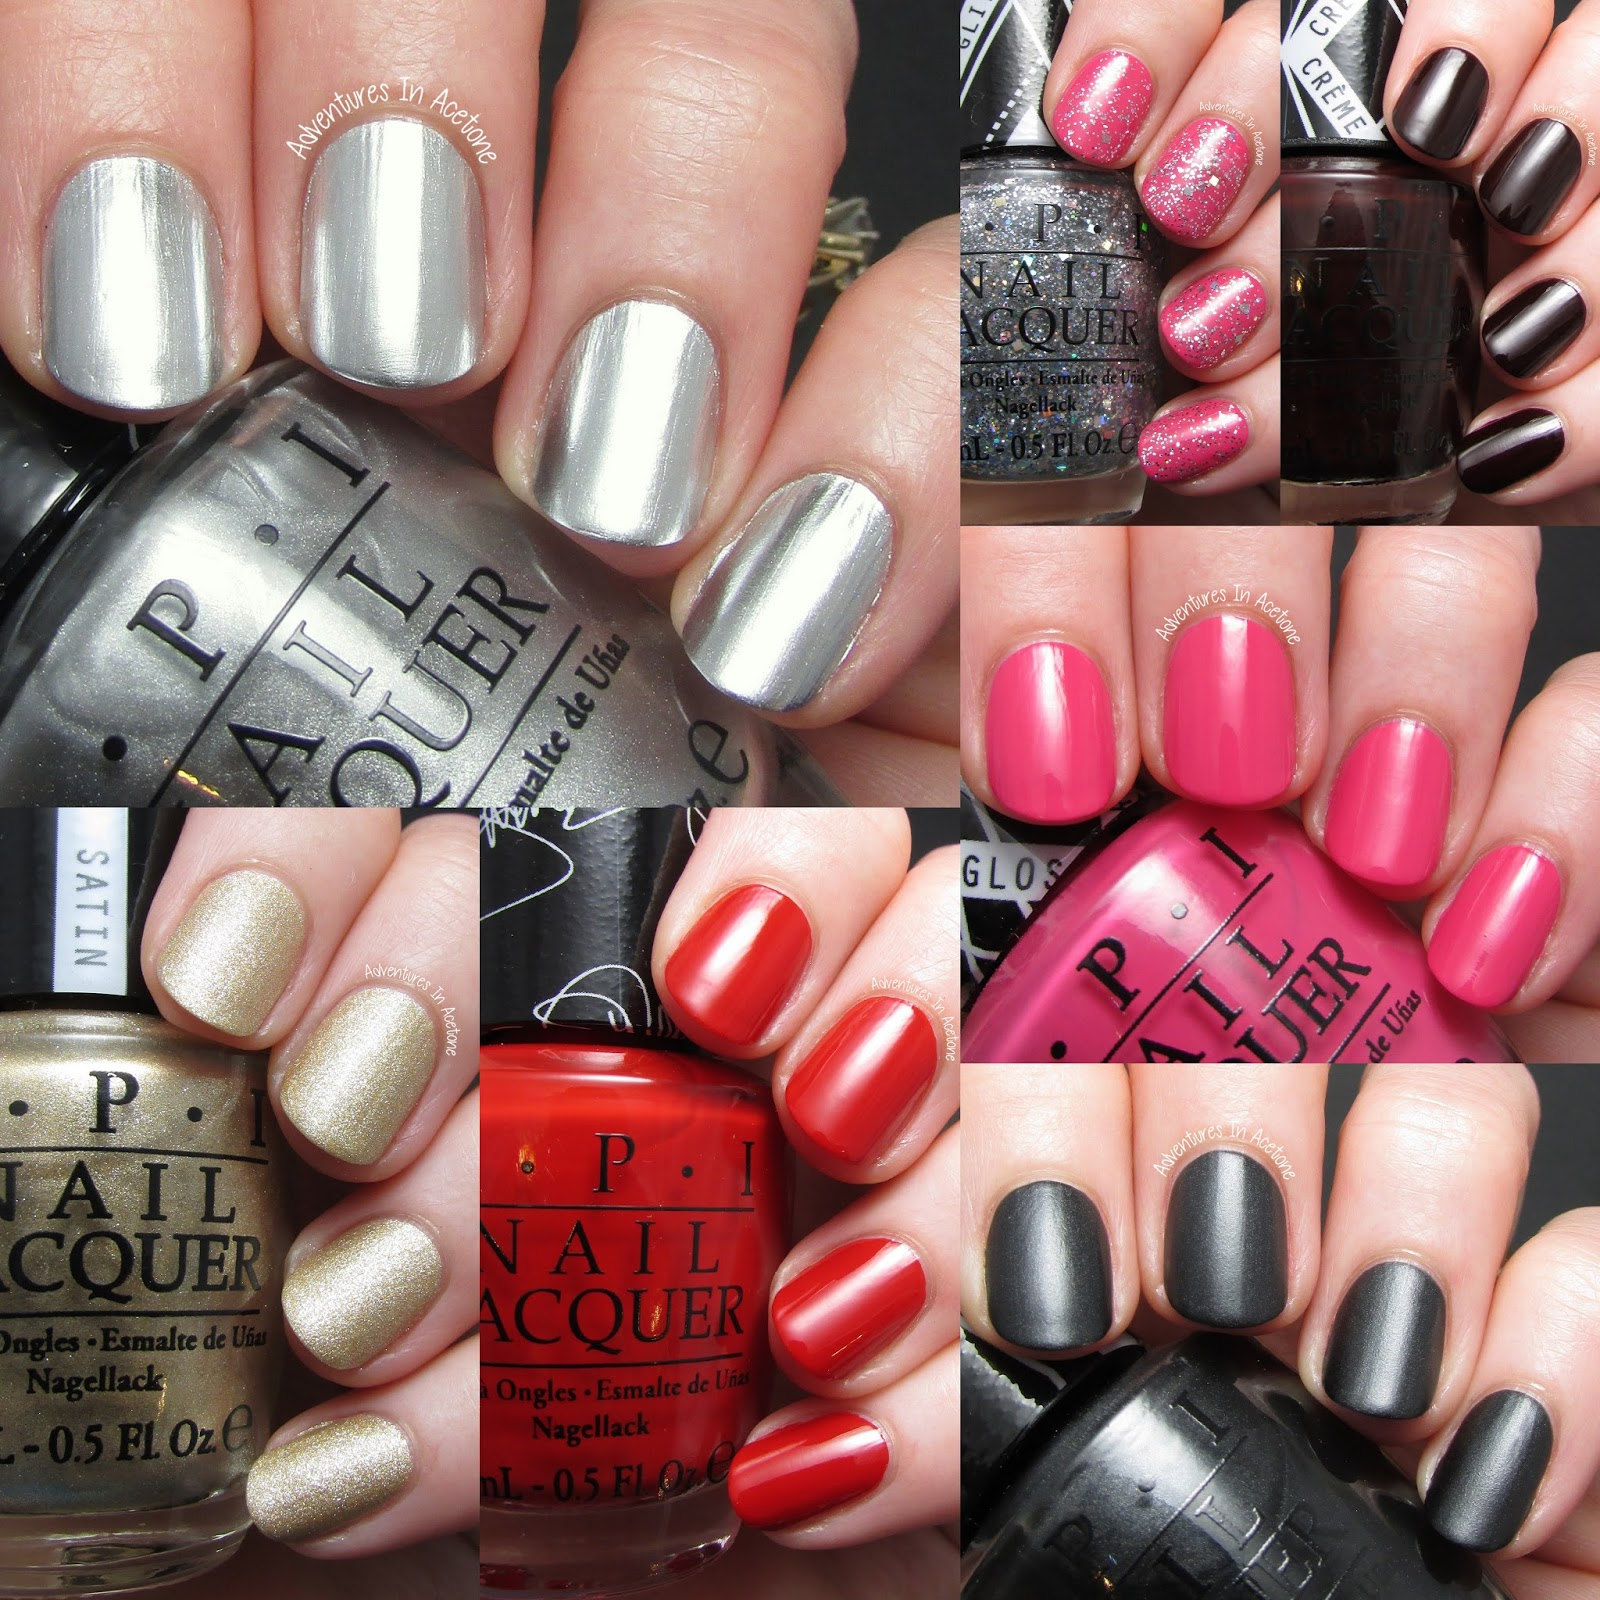 Swatch Saturday: Gwen Stefani by OPI Collection! - Adventures In Acetone